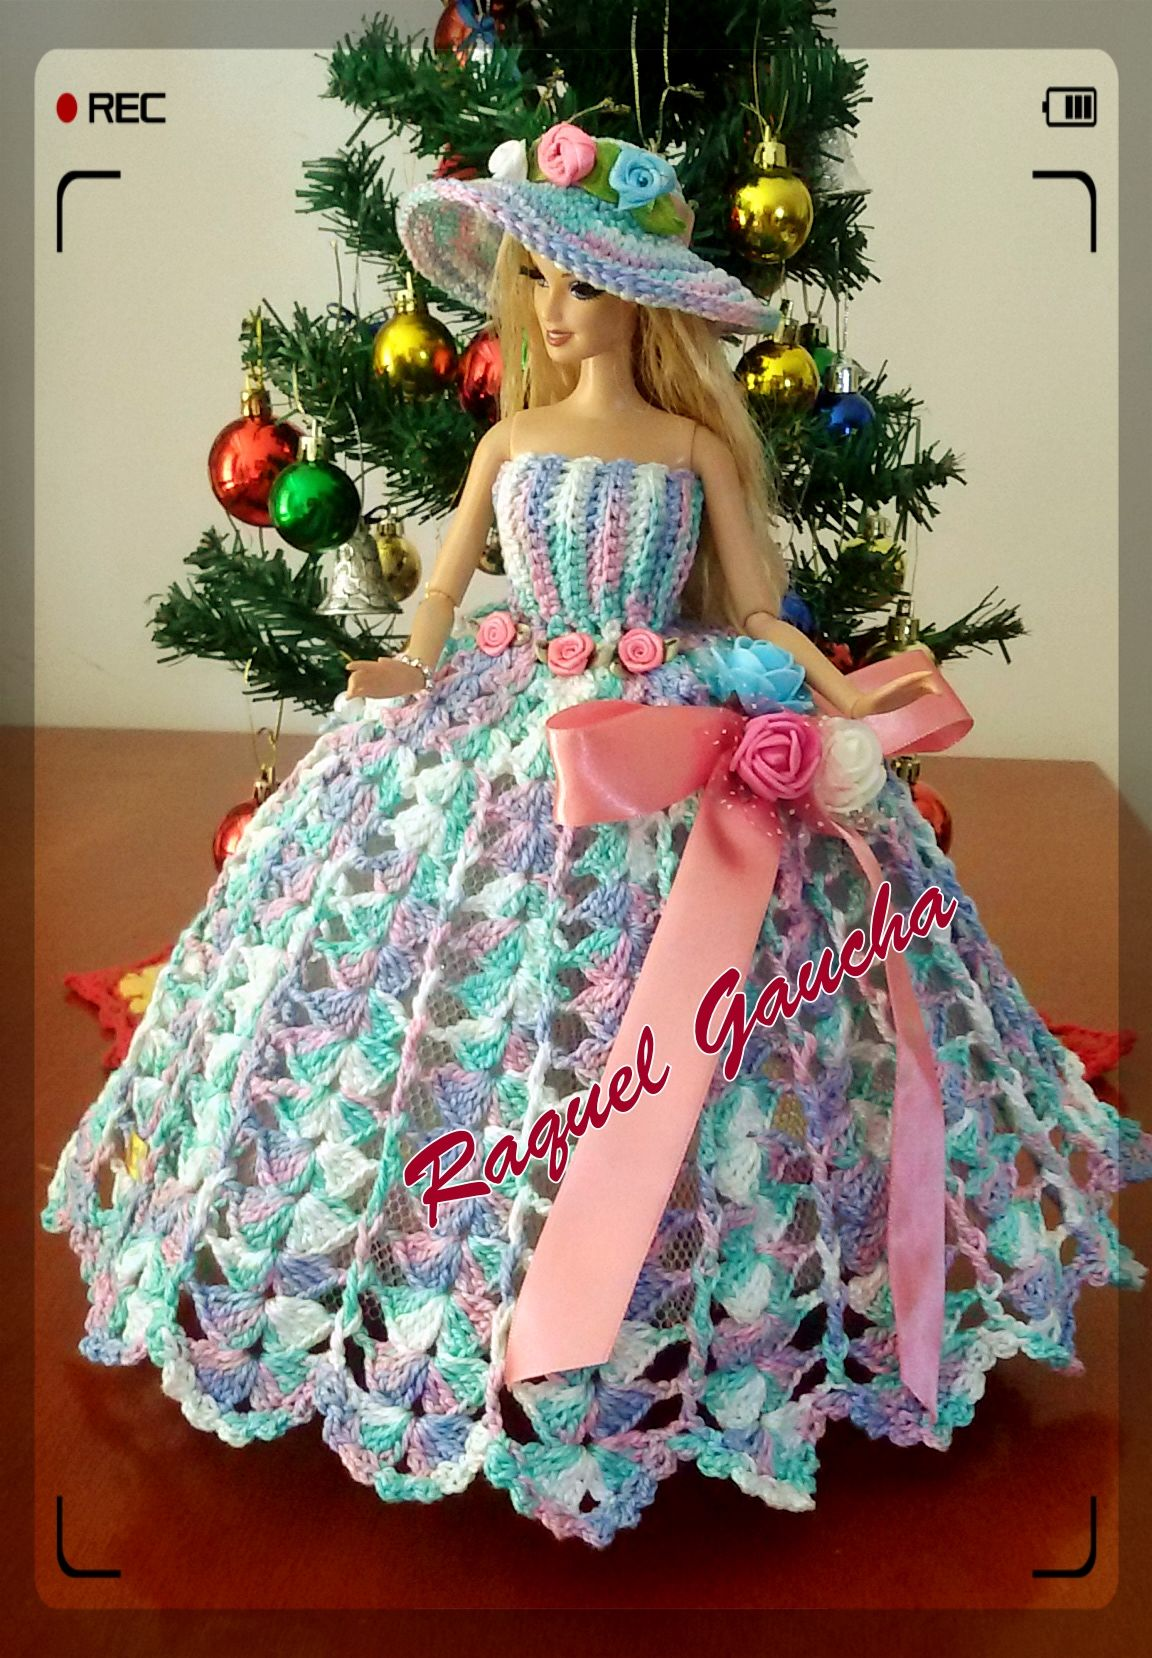 Raquelgaucha Crochet Crochê Tutorial Passoapasso Pasoapaso Ganchillo Comofazer Diy Boneca Mu Crochet Barbie Clothes Crochet Doll Dress Crochet Dress